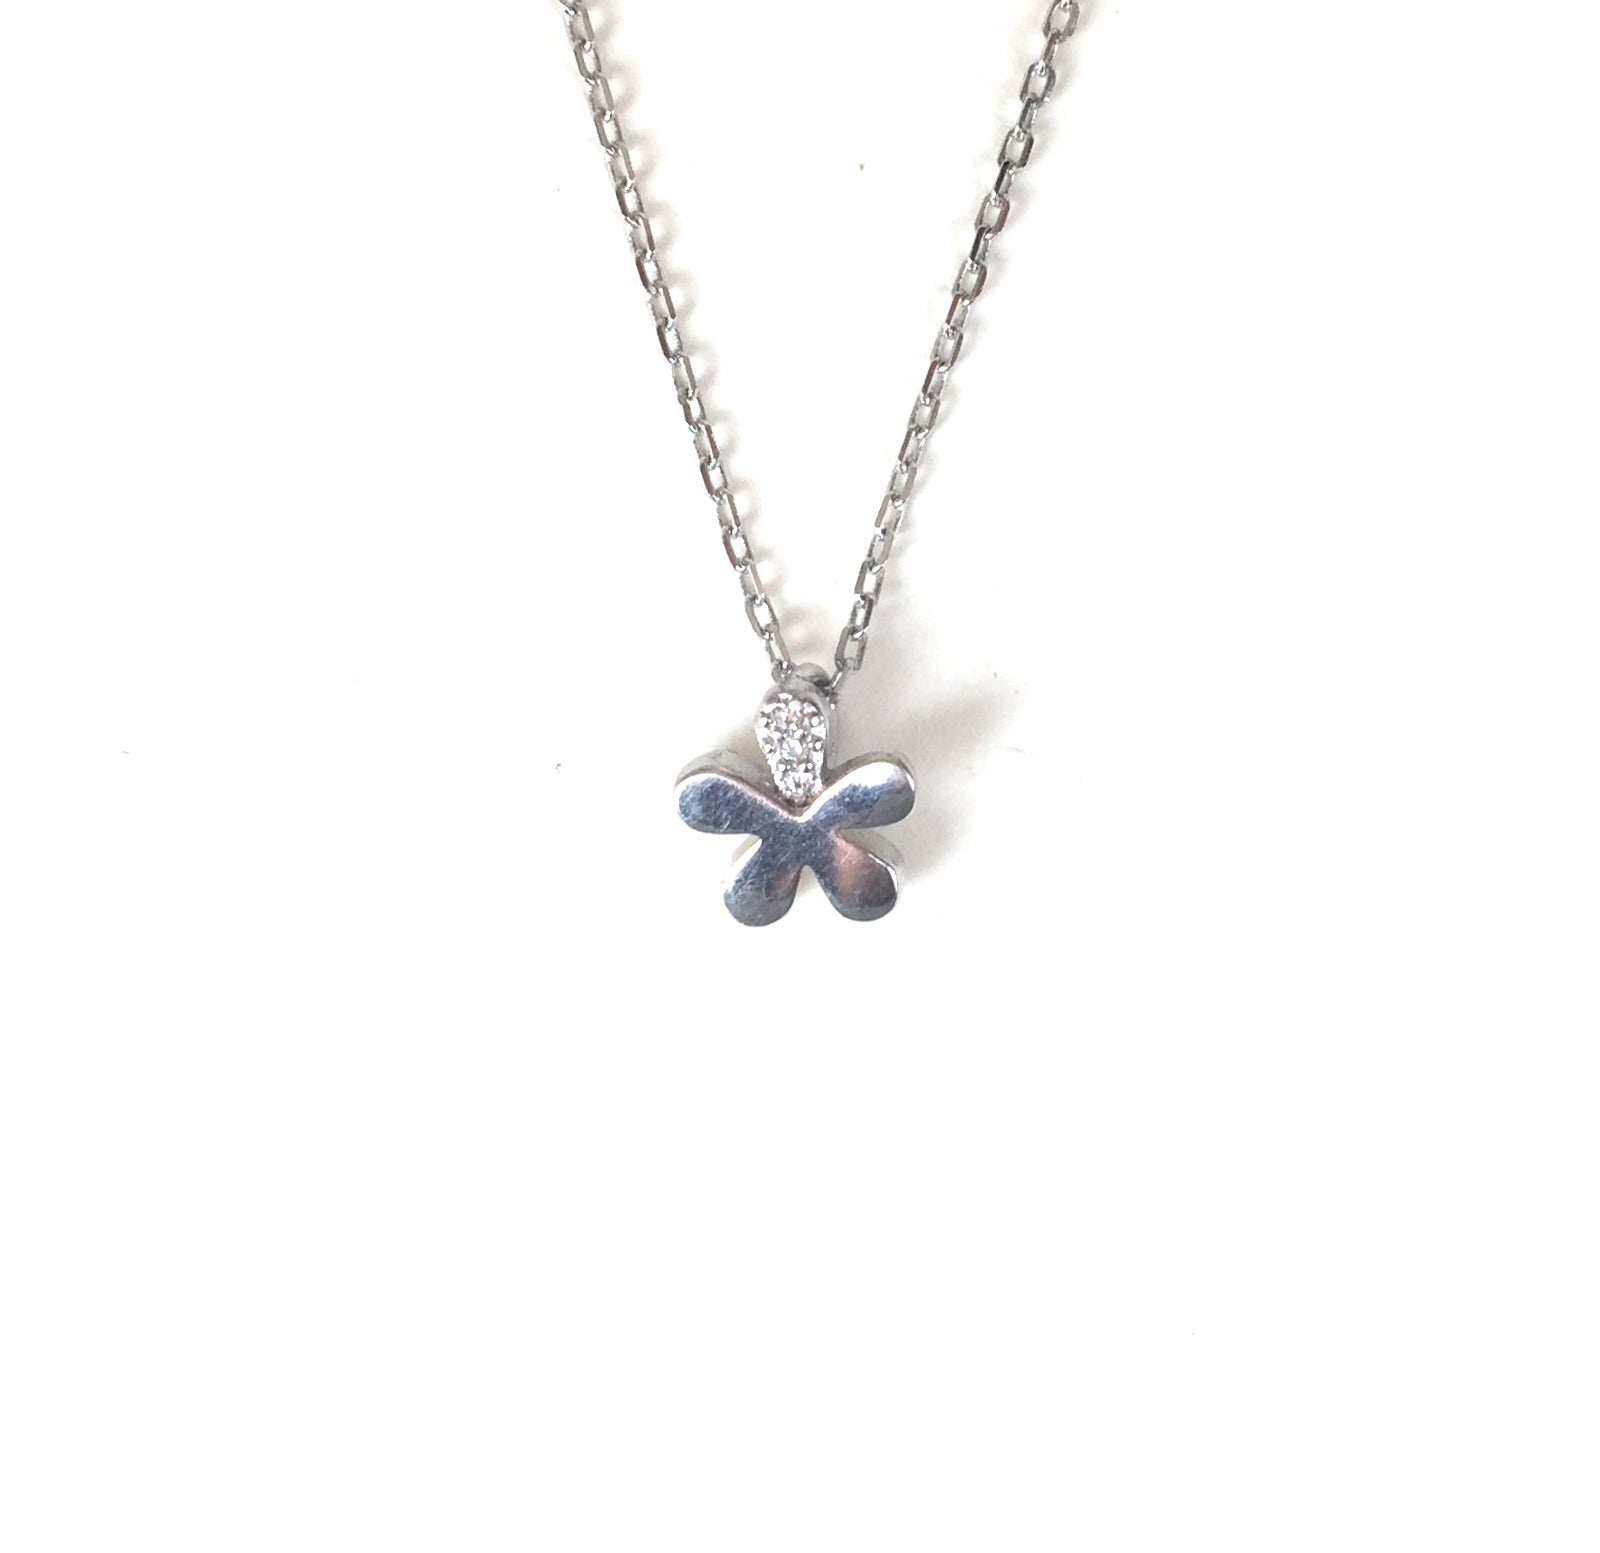 MINI FLOWER PAVE CZ STERLING SILVER NECKLACE